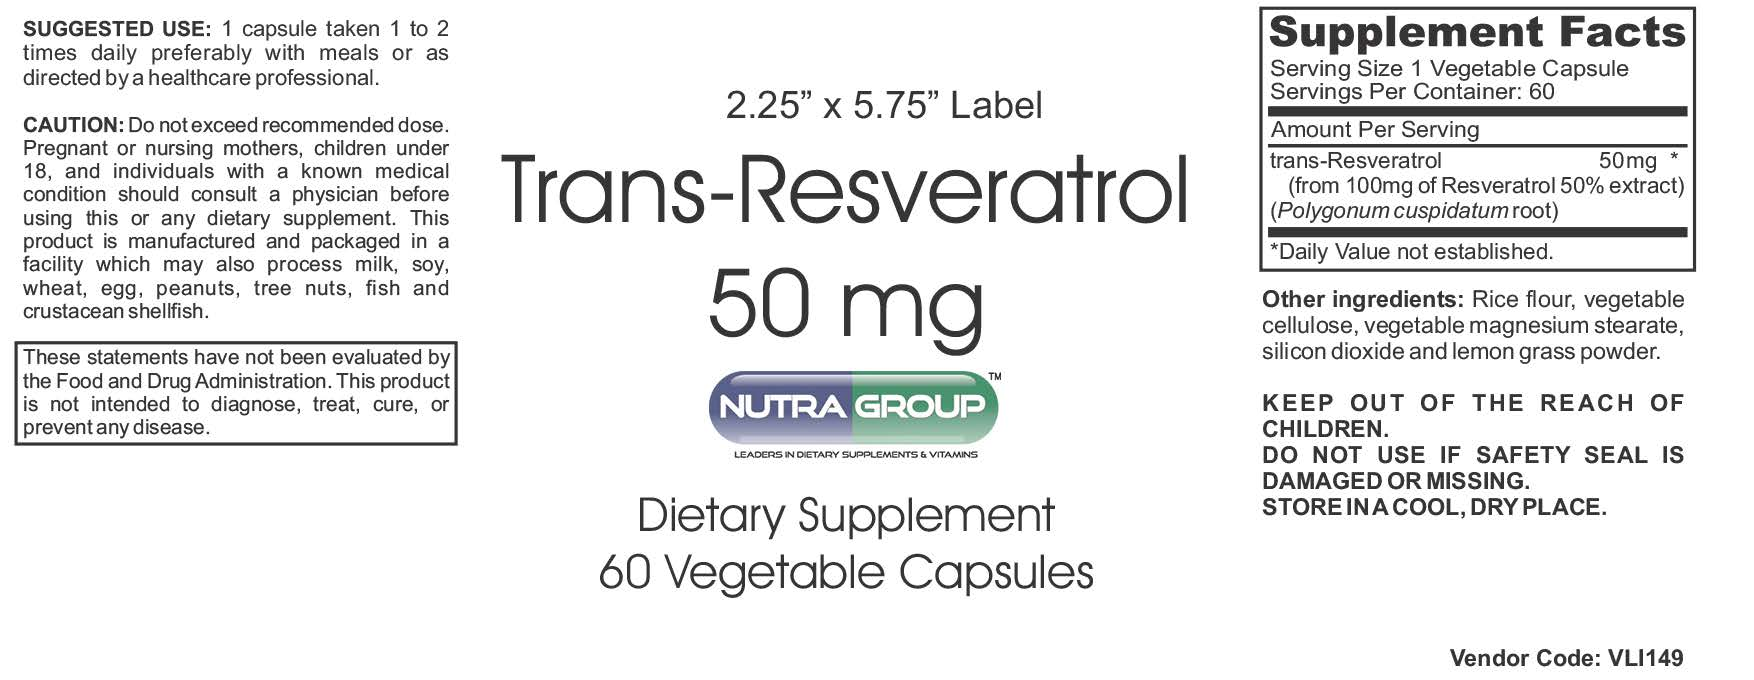 Private label Resveratrol supplement